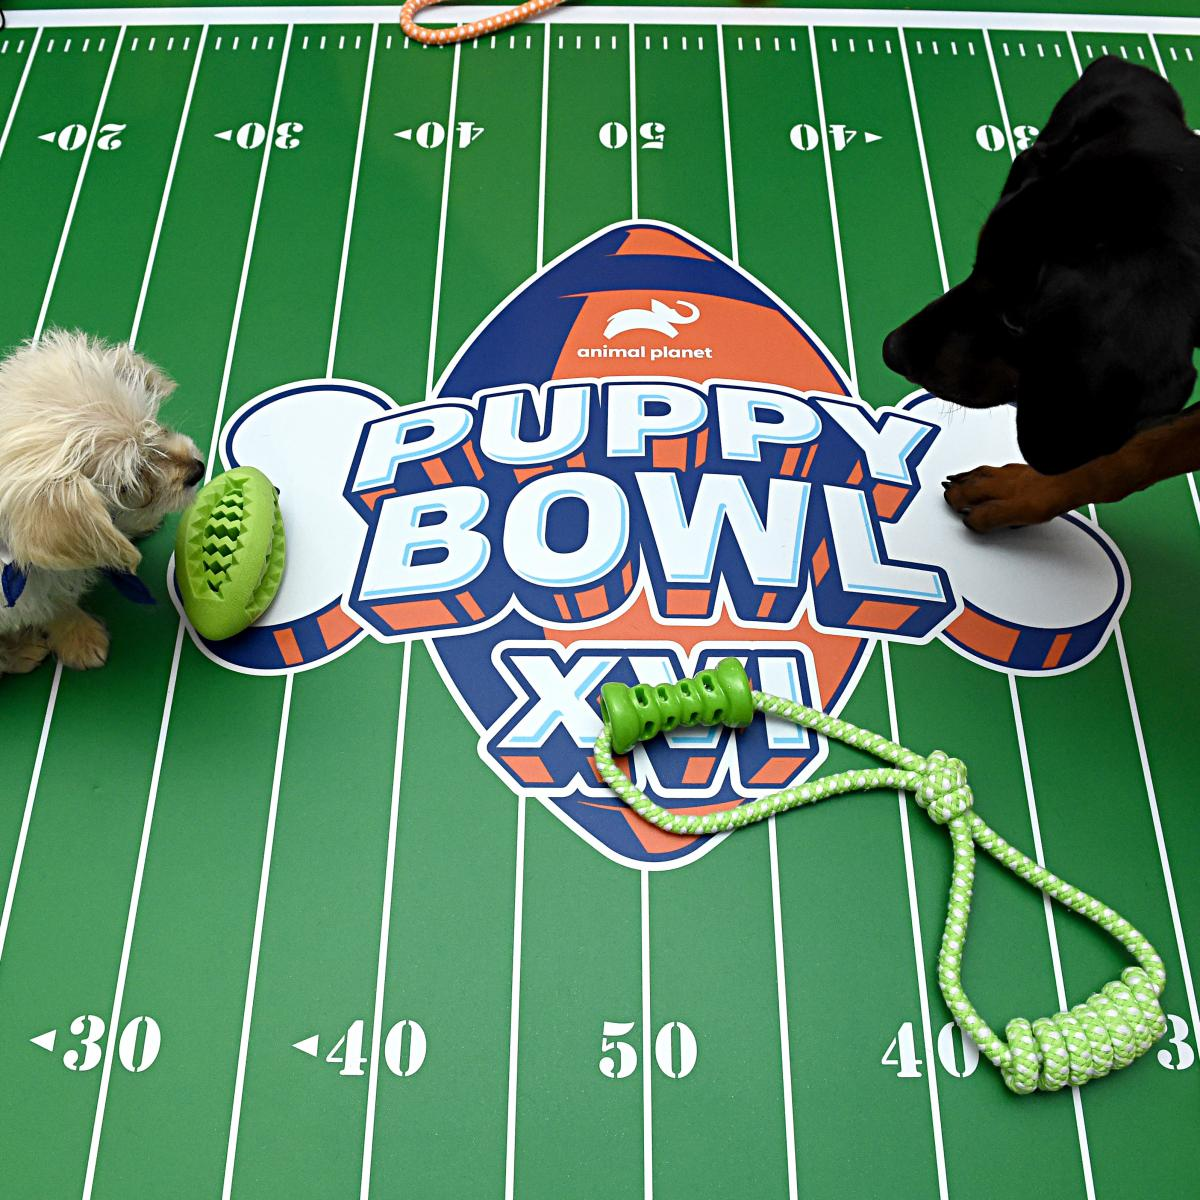 Puppy Bowl XVI 2020: Date, Starting Lineup, TV Schedule and More